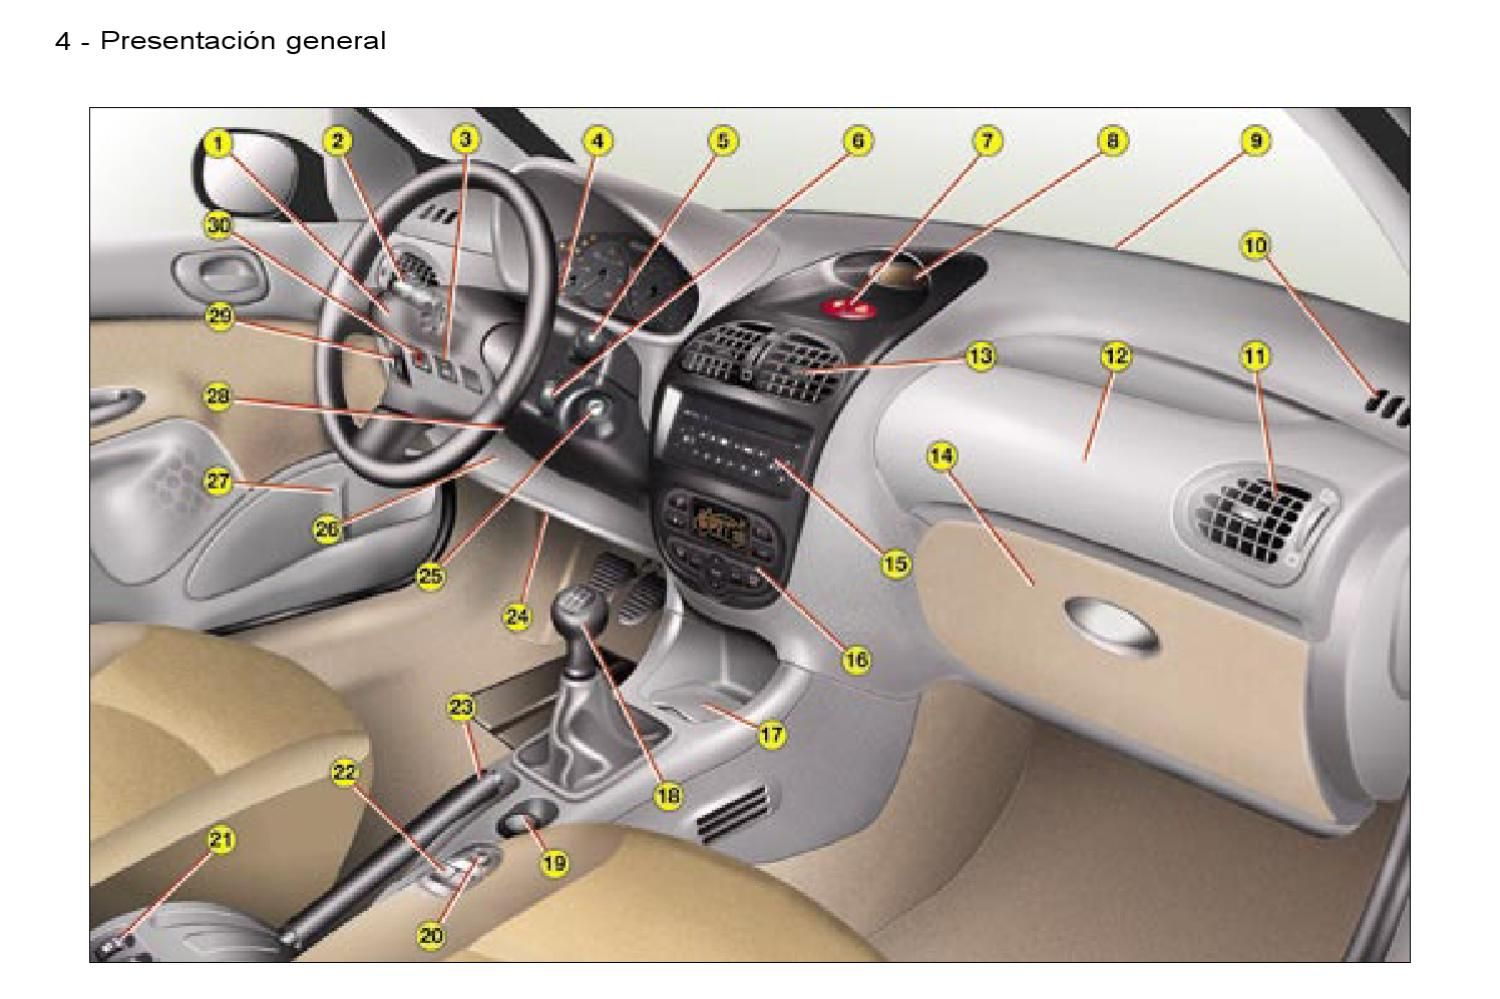 Manual Peugeot 206 In 2020 Peugeot Manual Steering Wheel